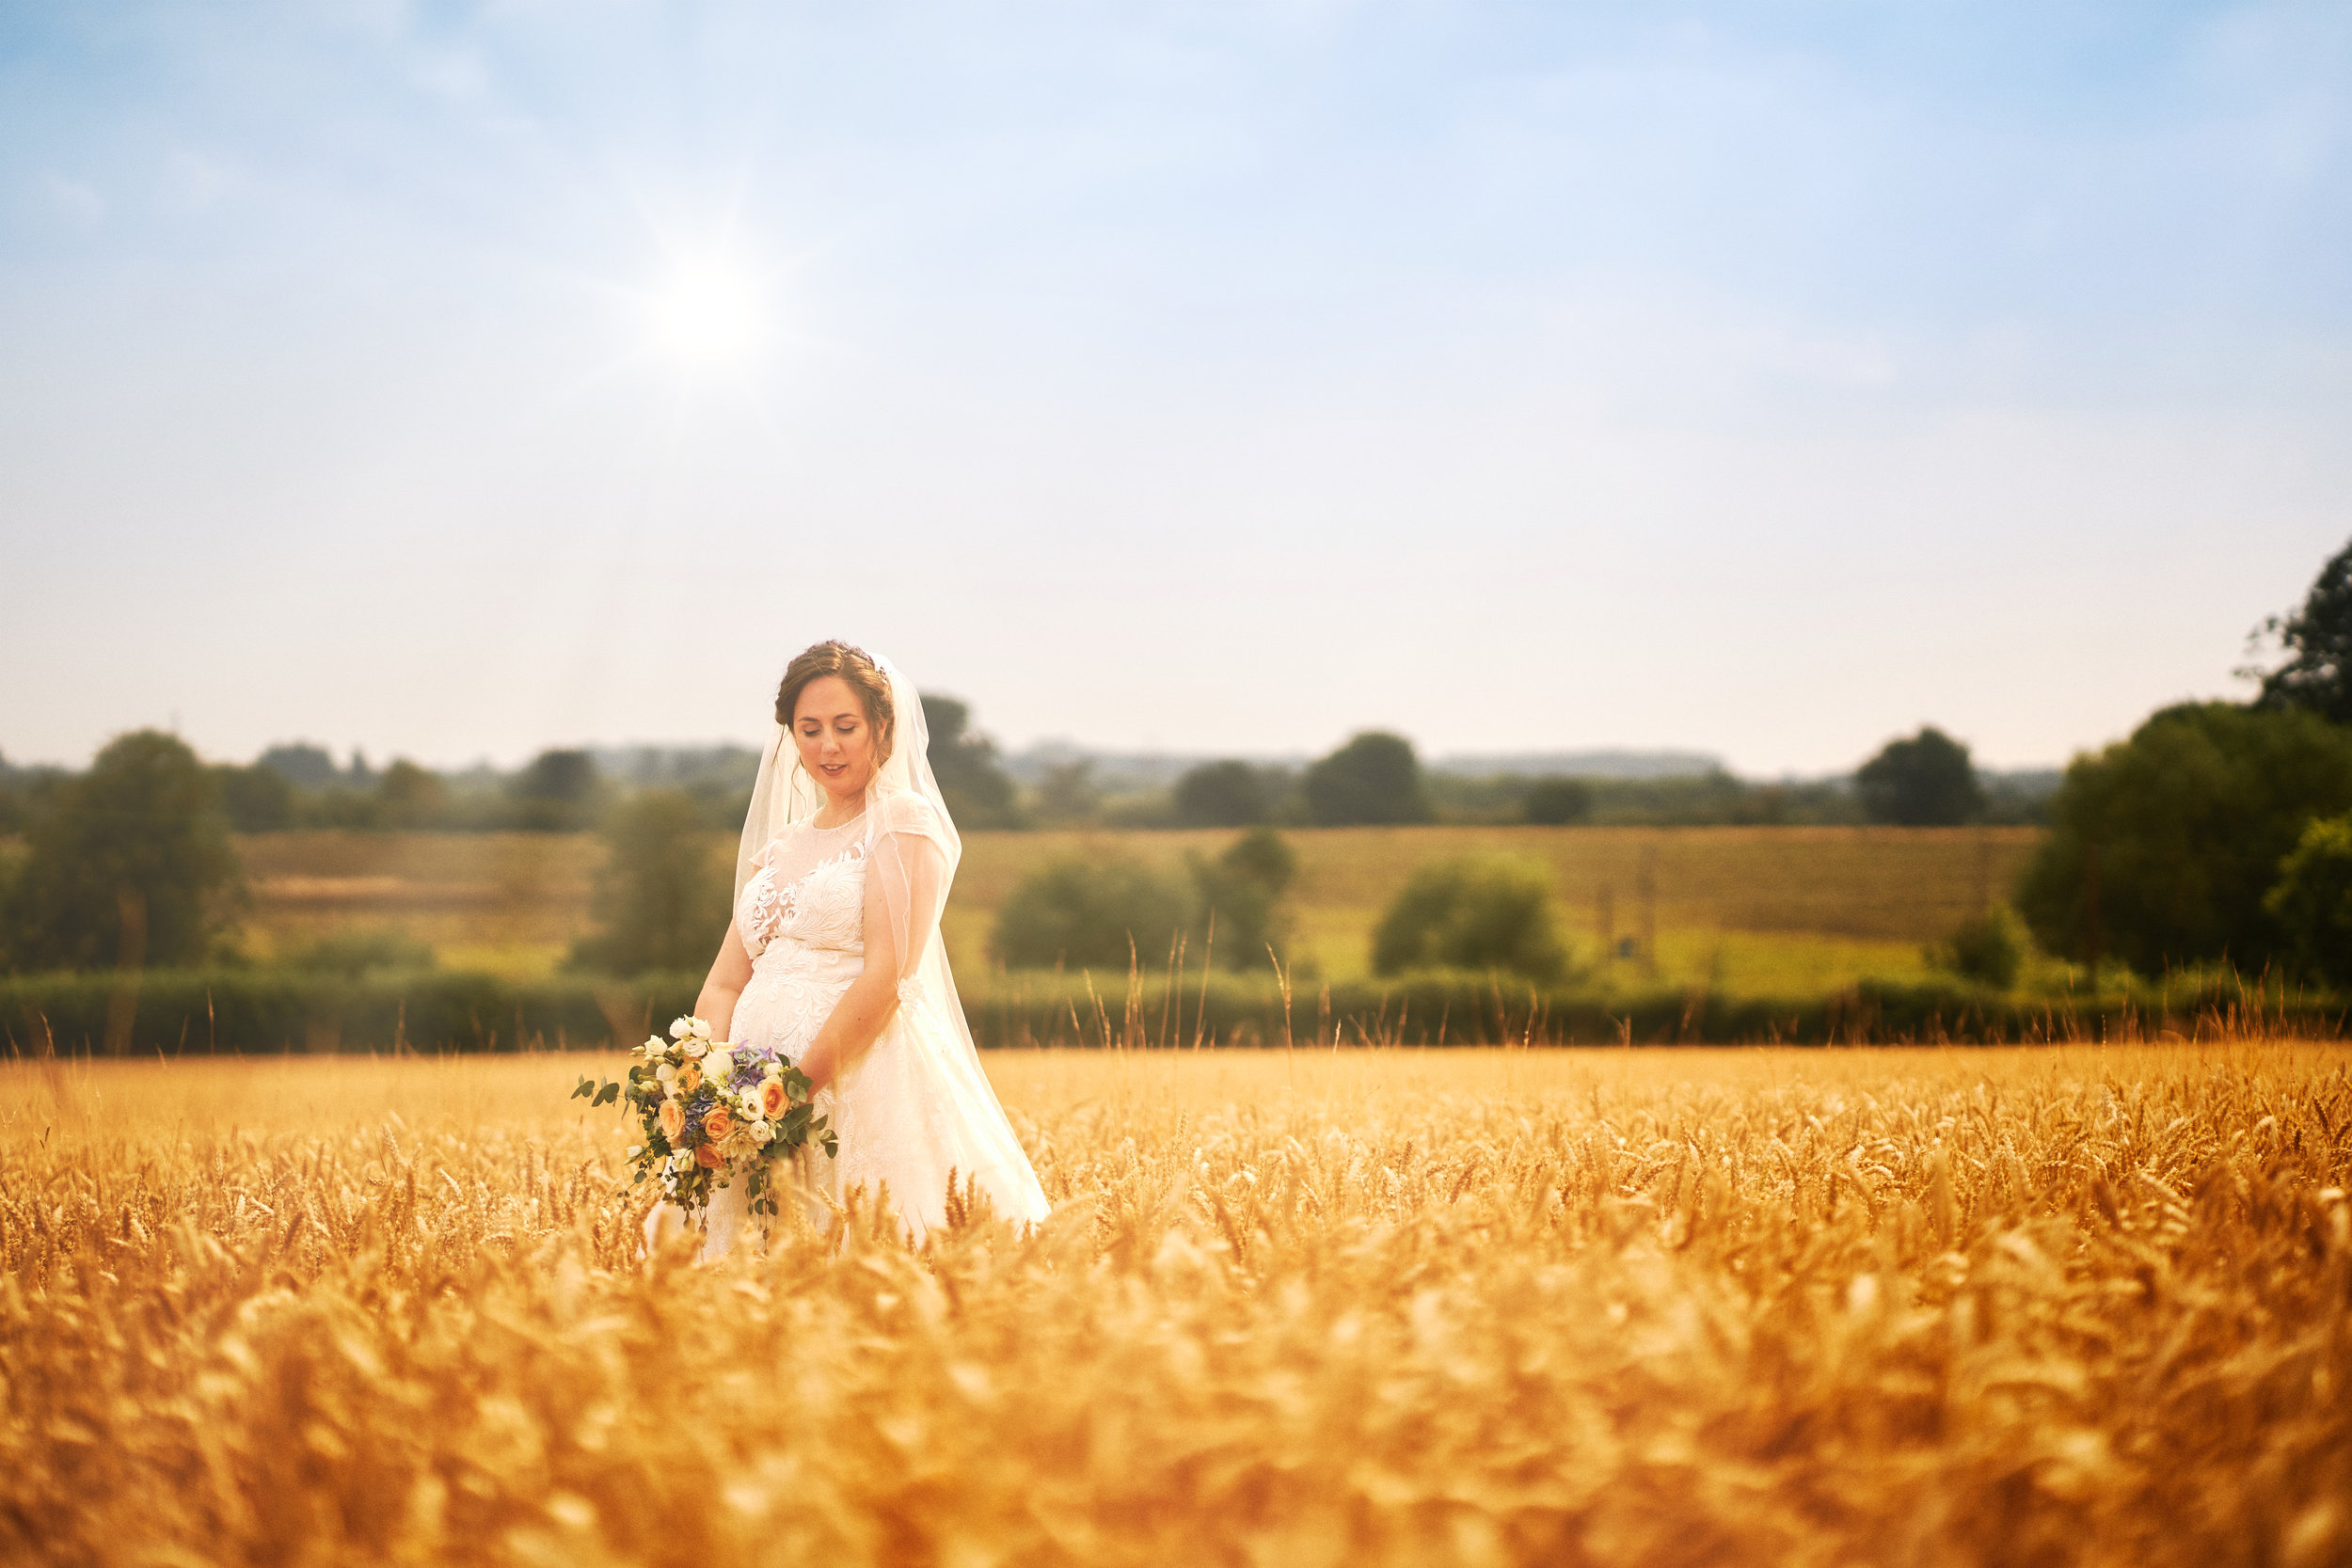 Katie Eduard Wedding at South Leigh village Hall South Leigh on 21 July 2018.